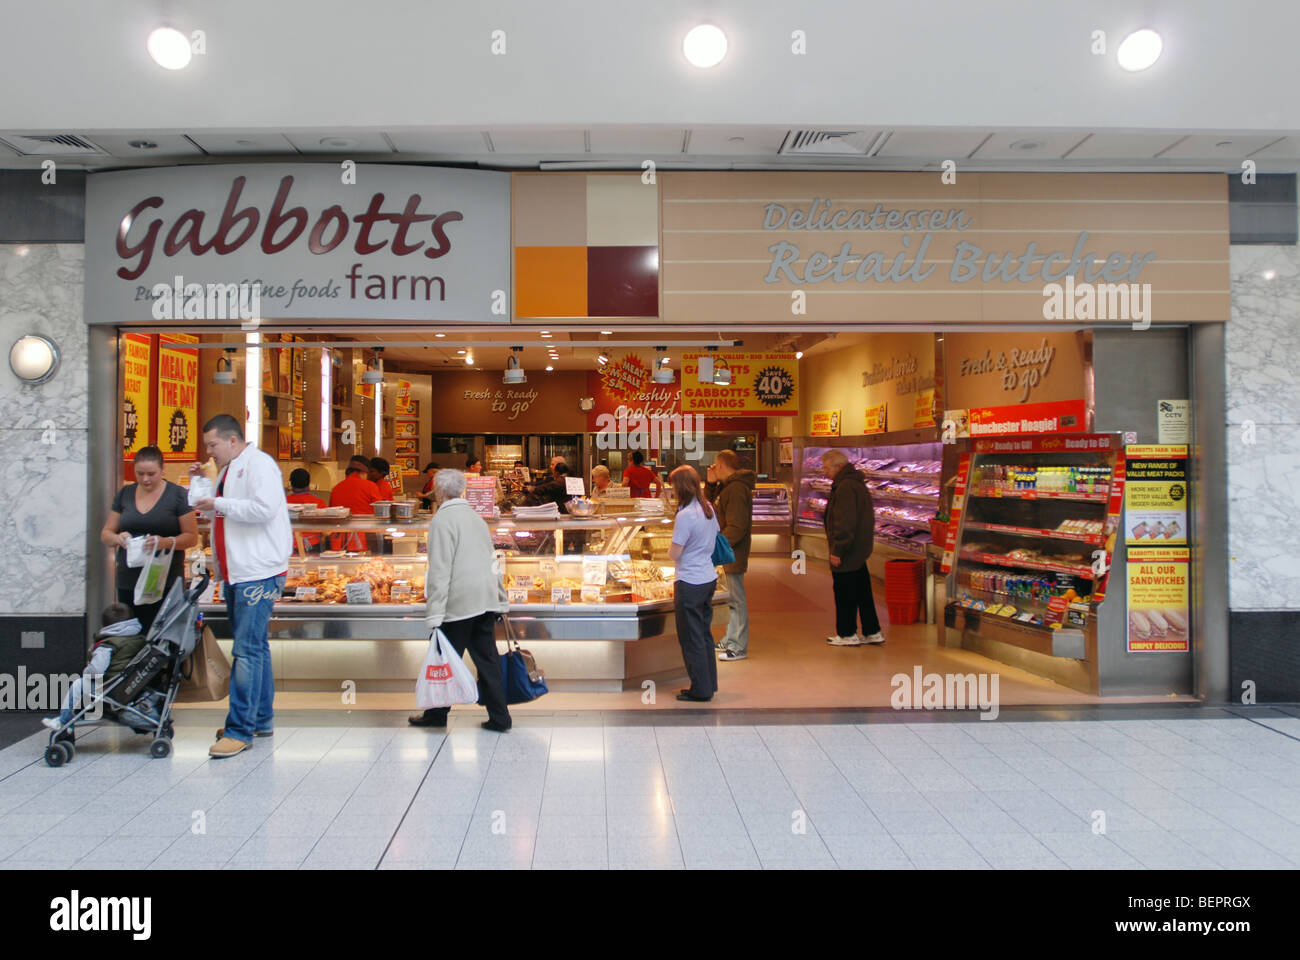 Gabbots Farm, Manchester Arndale - Stock Image